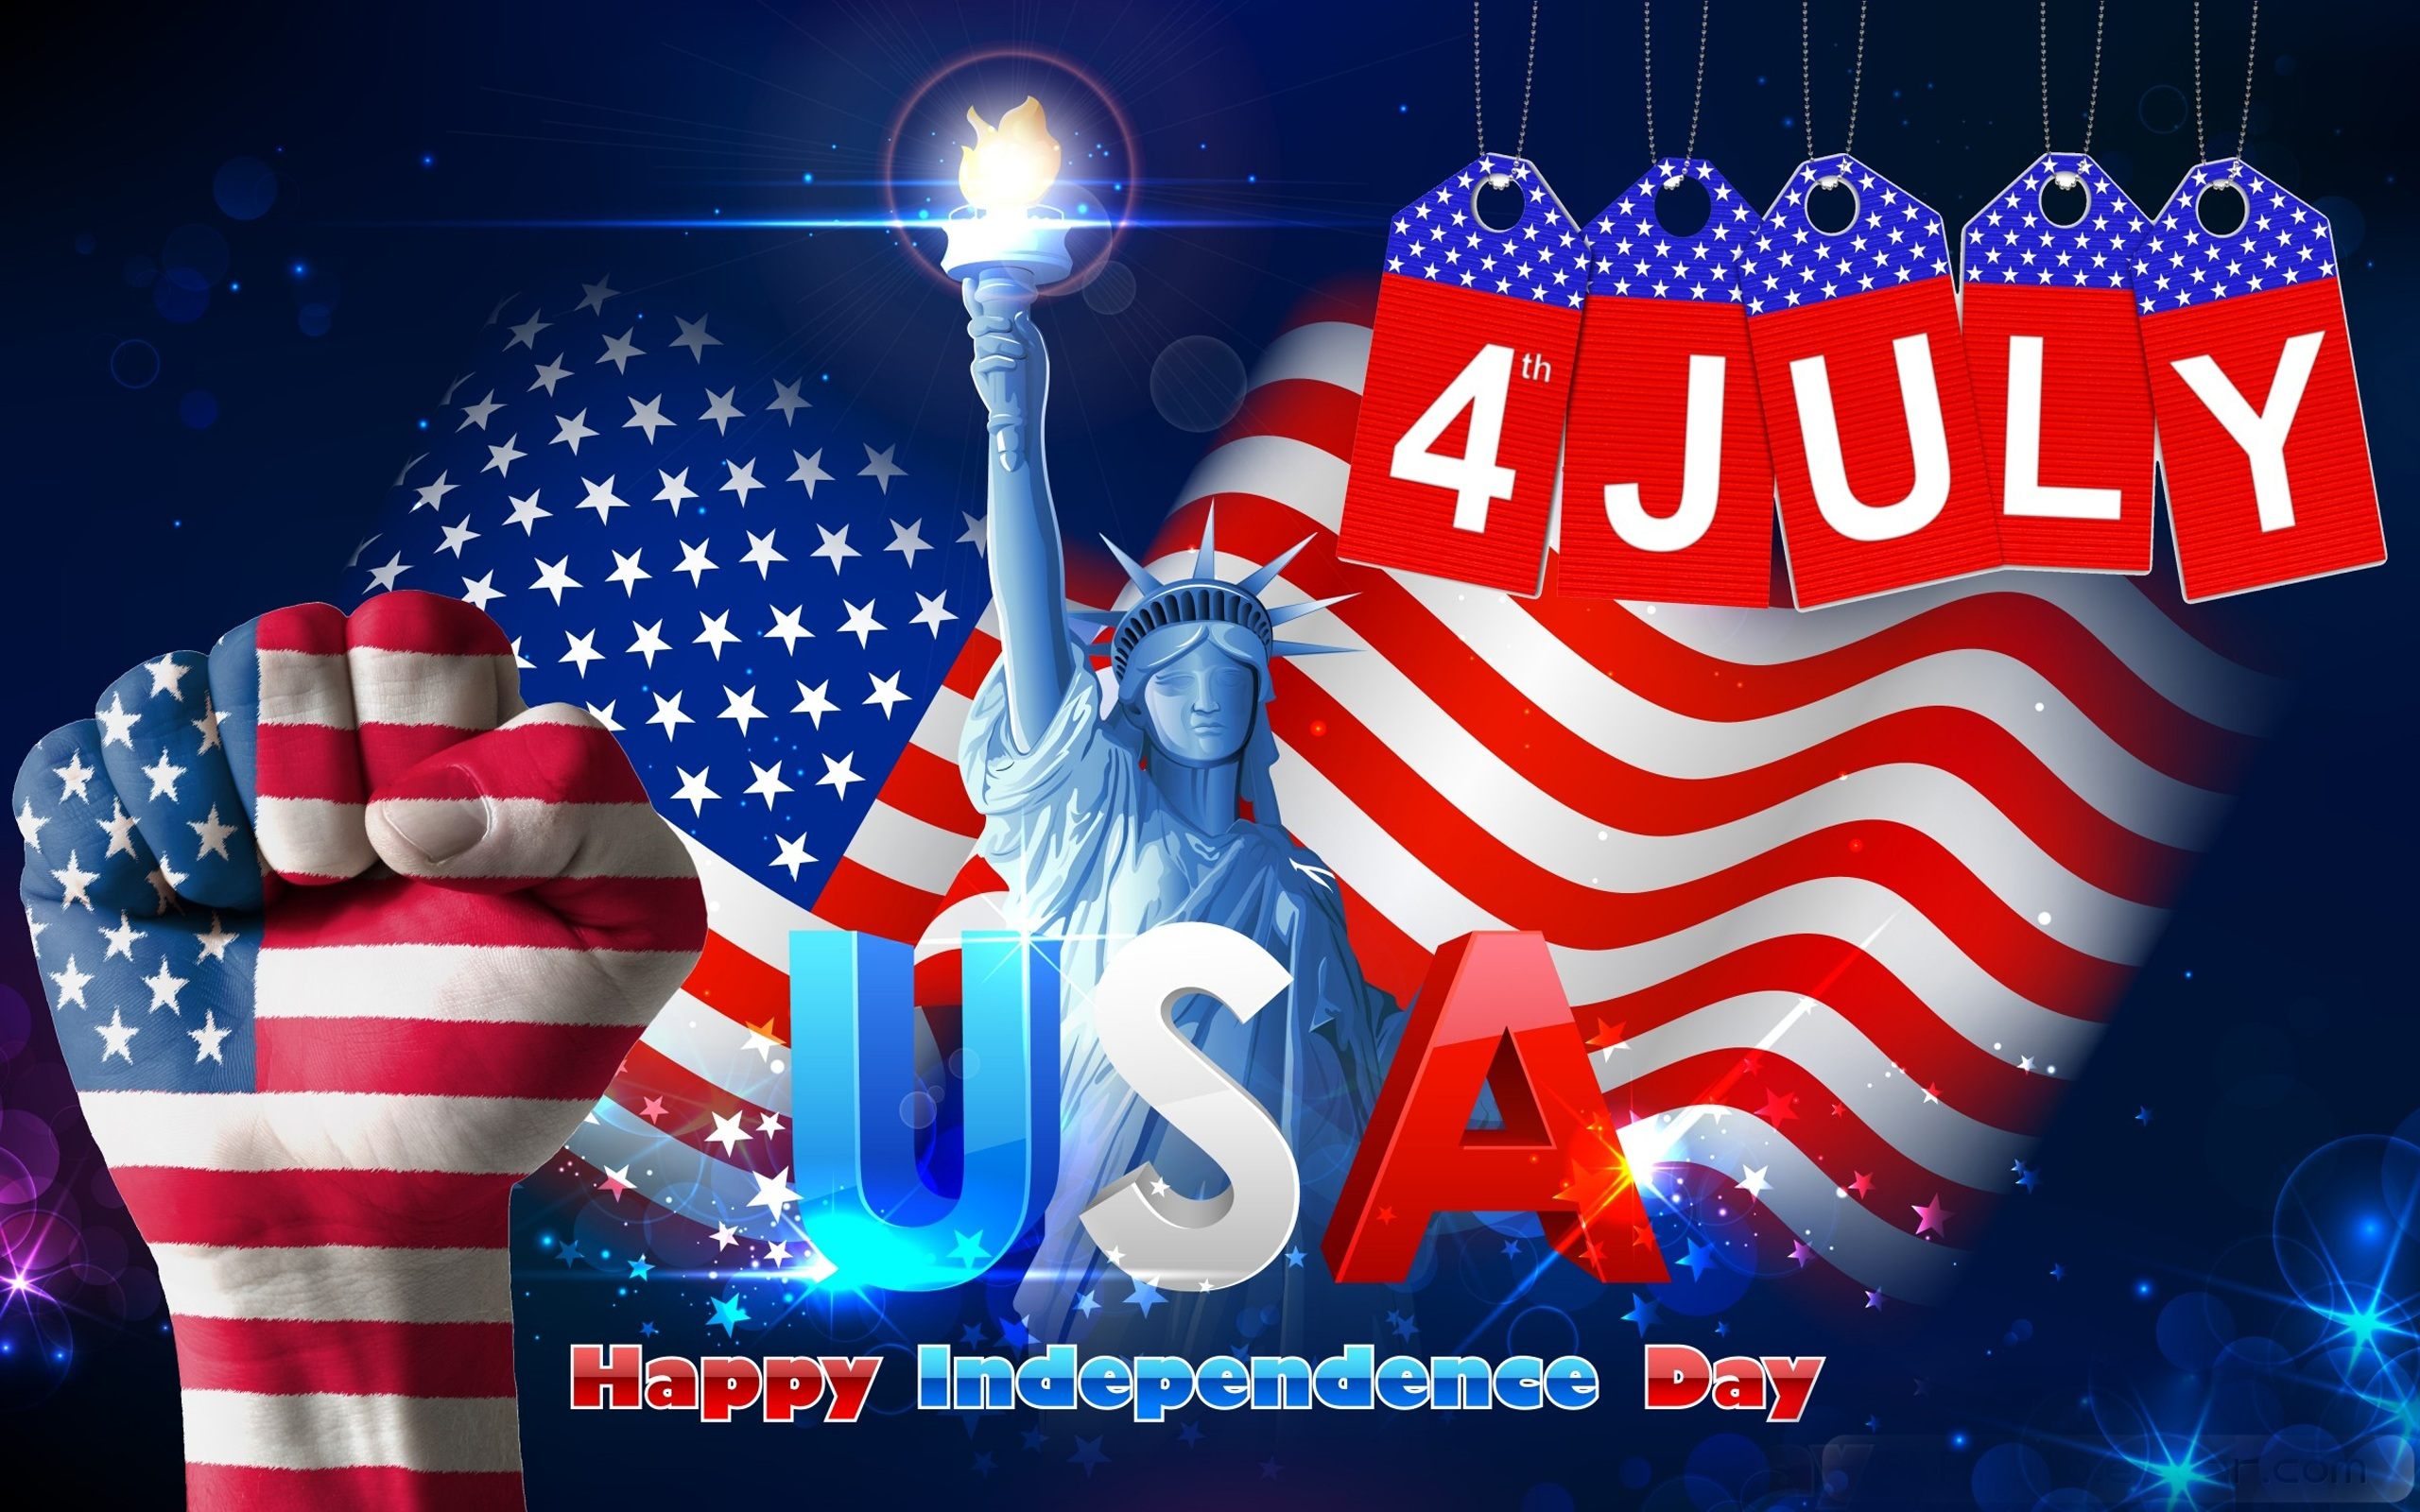 Download New 3d Wallpapers For Pc 4 July Usa Independence Day Statue Of Liberty Wishes